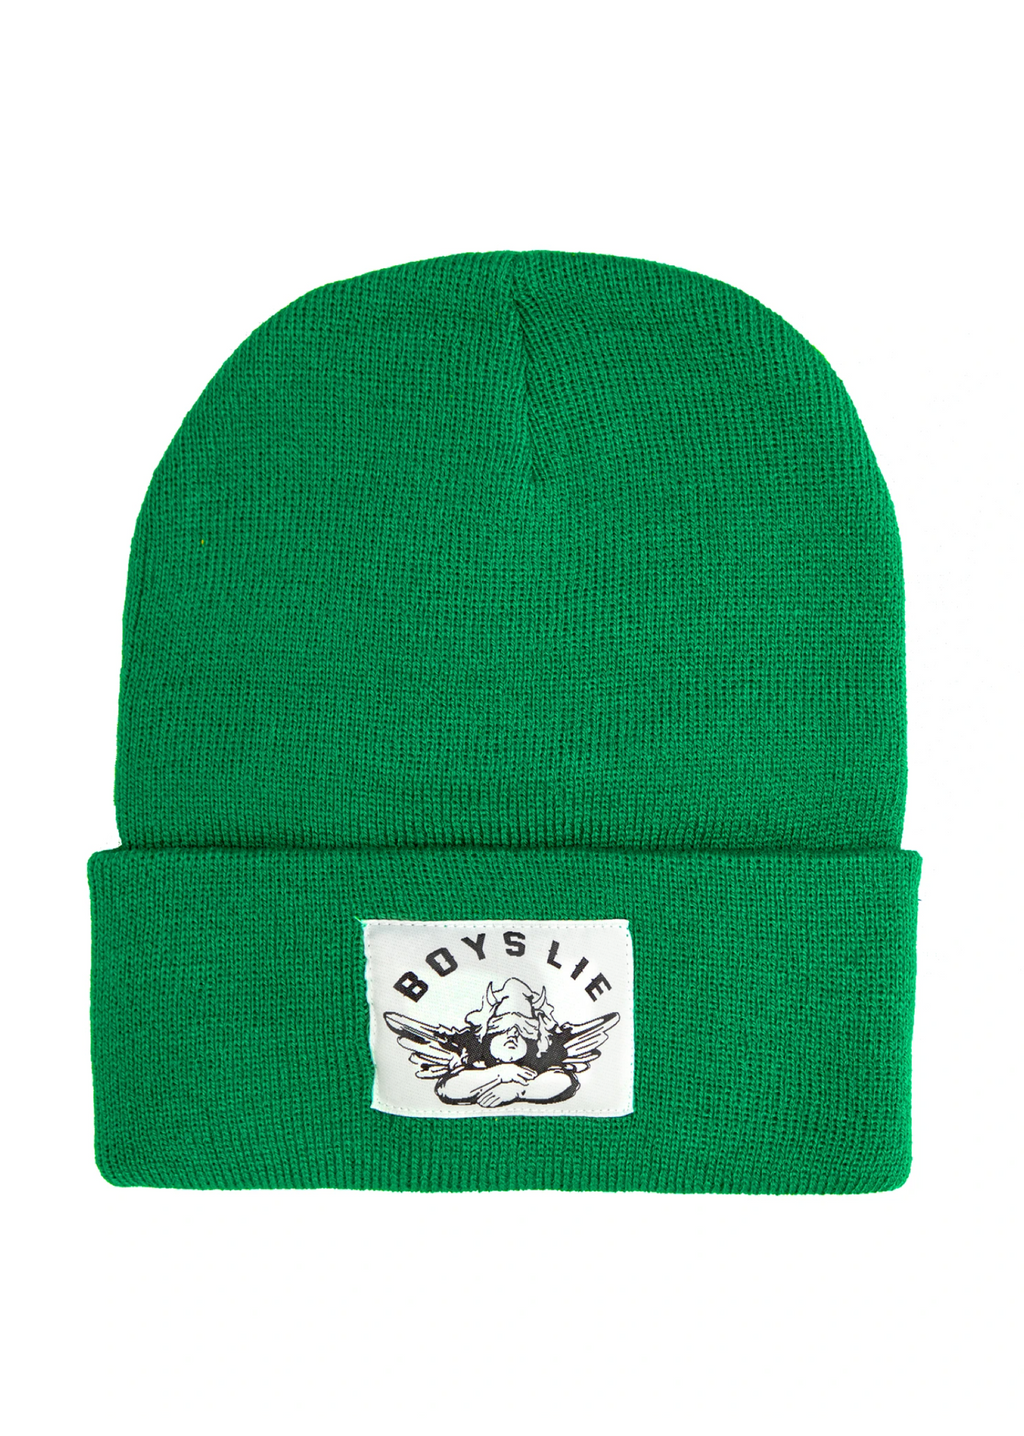 Boys Lie Beanie ★ Kelly Green - Rock N Rags